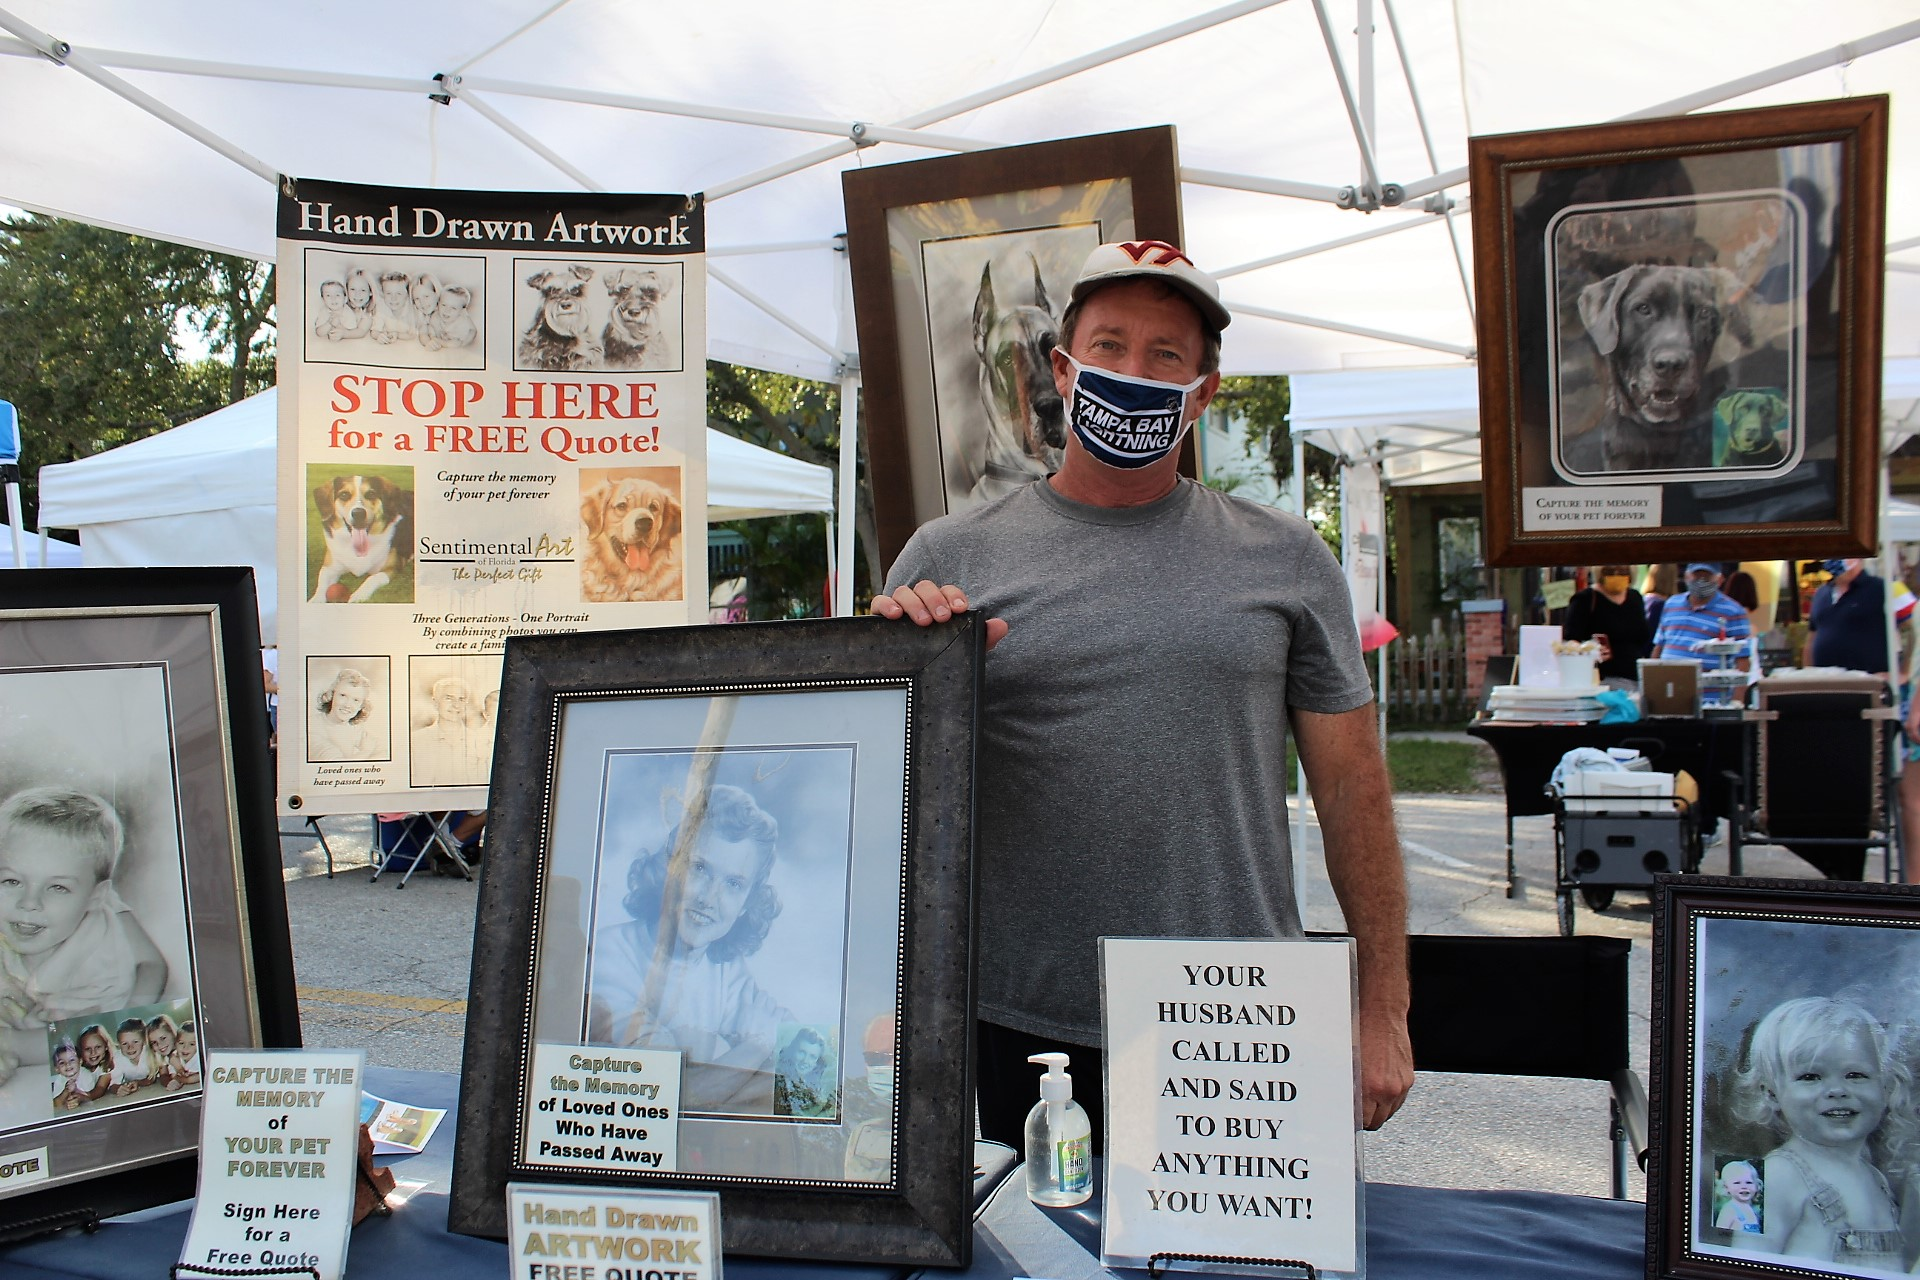 A man in a tent with a face mask standing with hand-drawn art in frames